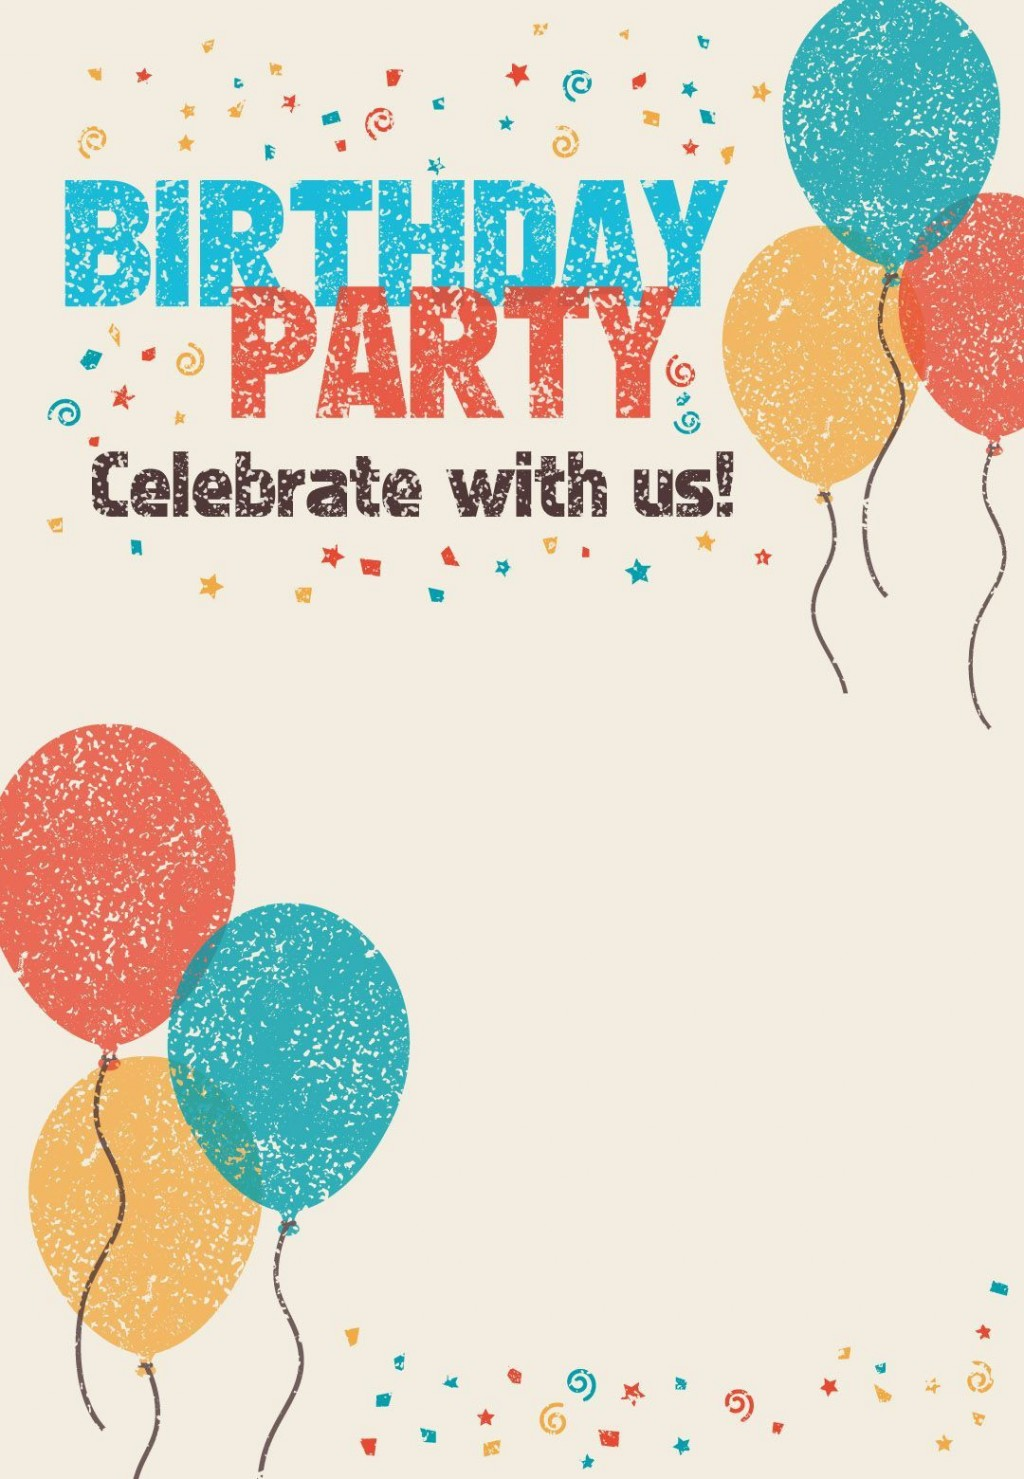 002 Excellent Free Birthday Party Invitation Template Design  Templates Printable 16th Australia UkLarge